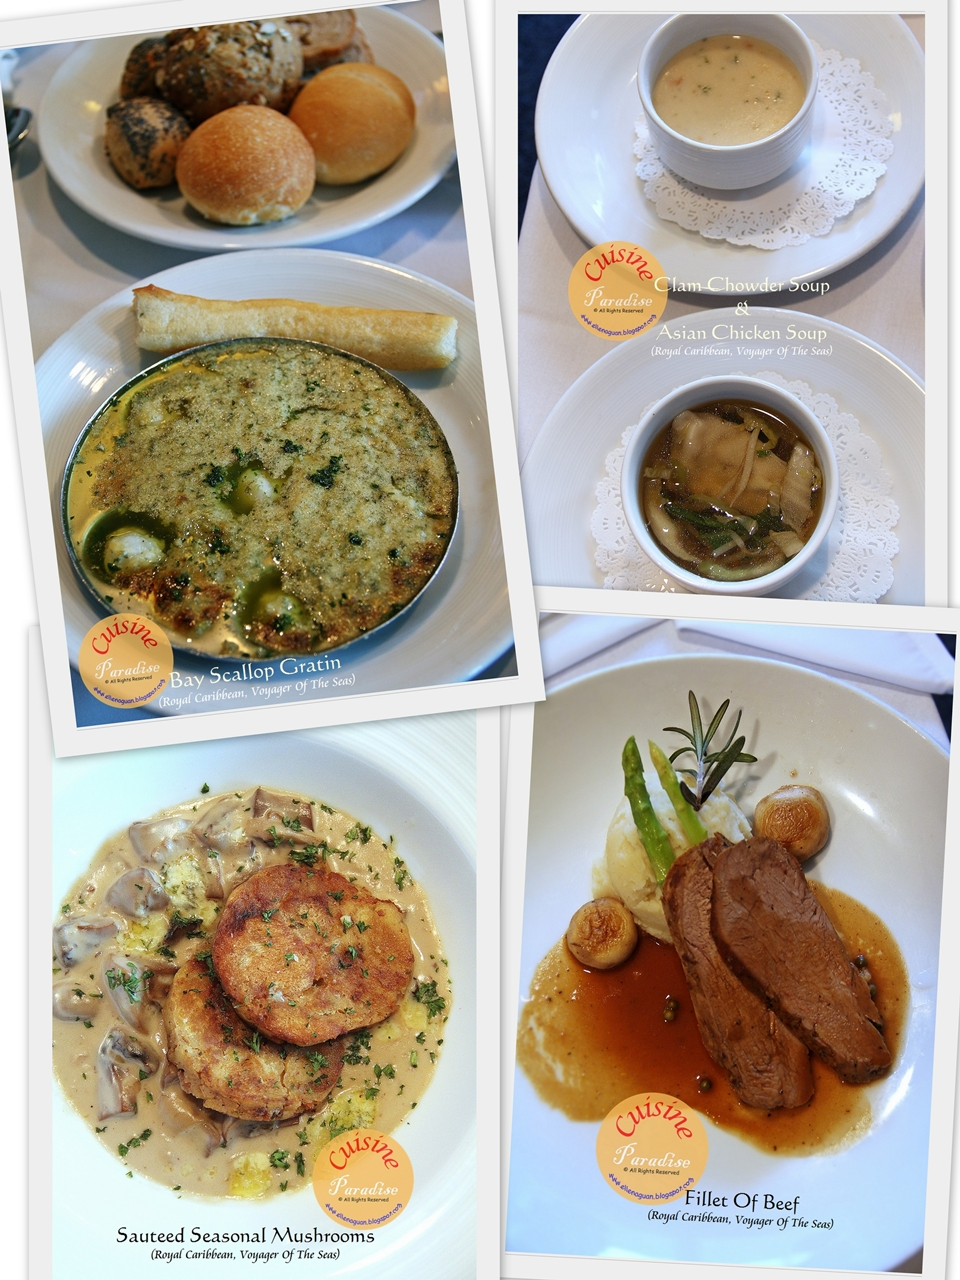 Voyager Of The Seas Royal Caribbean International Part Ii Dining Options Recipe Recipes